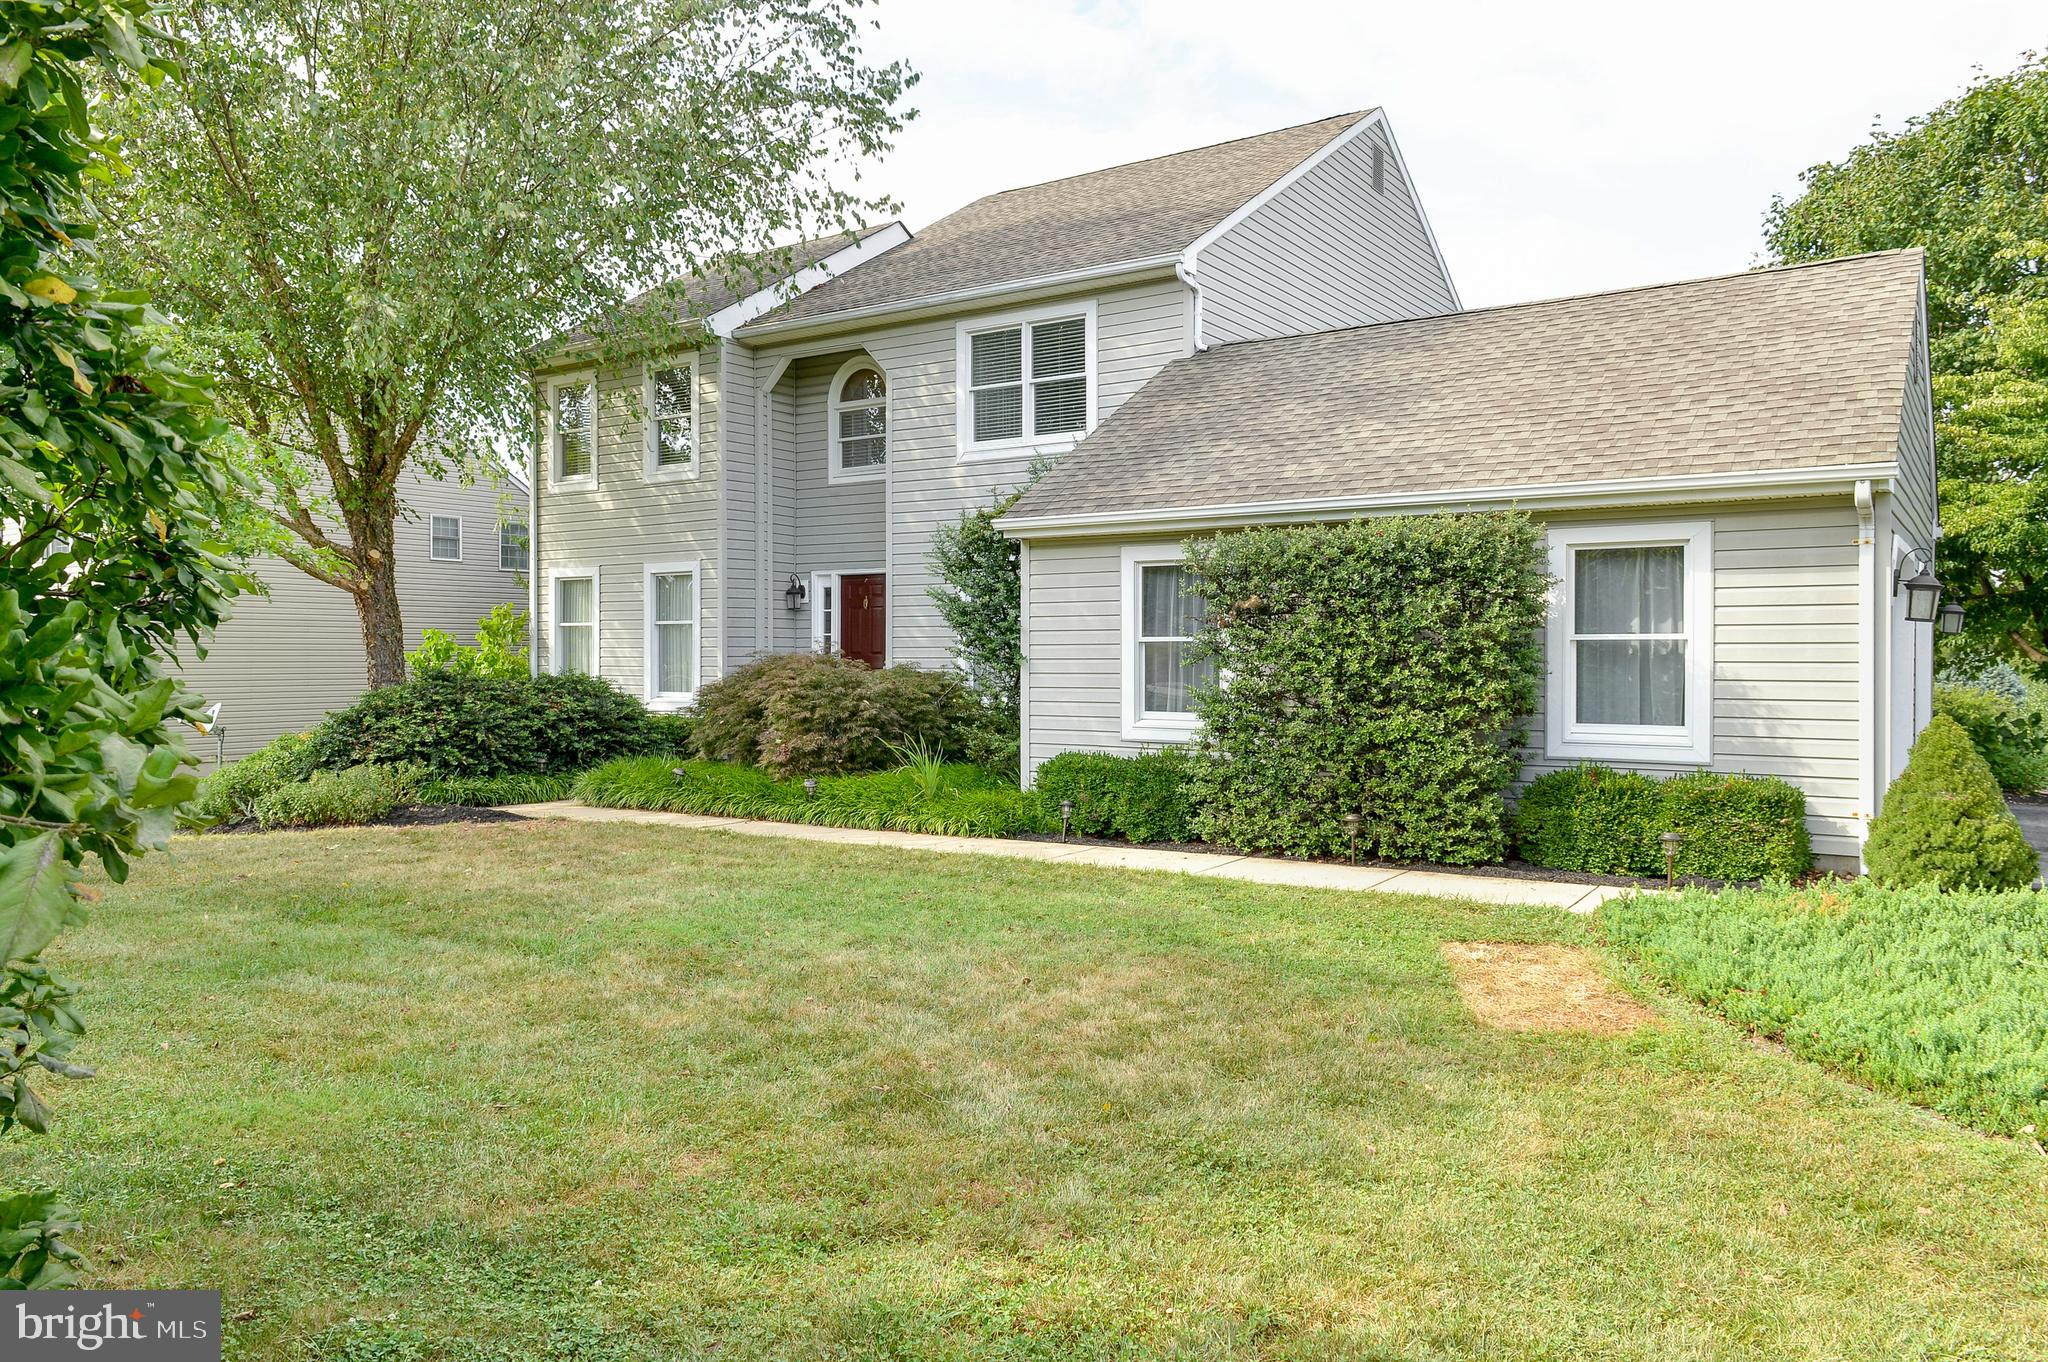 Welcome to 17 Elk Ranch Park Road!  This home has 4 bedrooms, 2 full baths, and 2 half baths in Cole